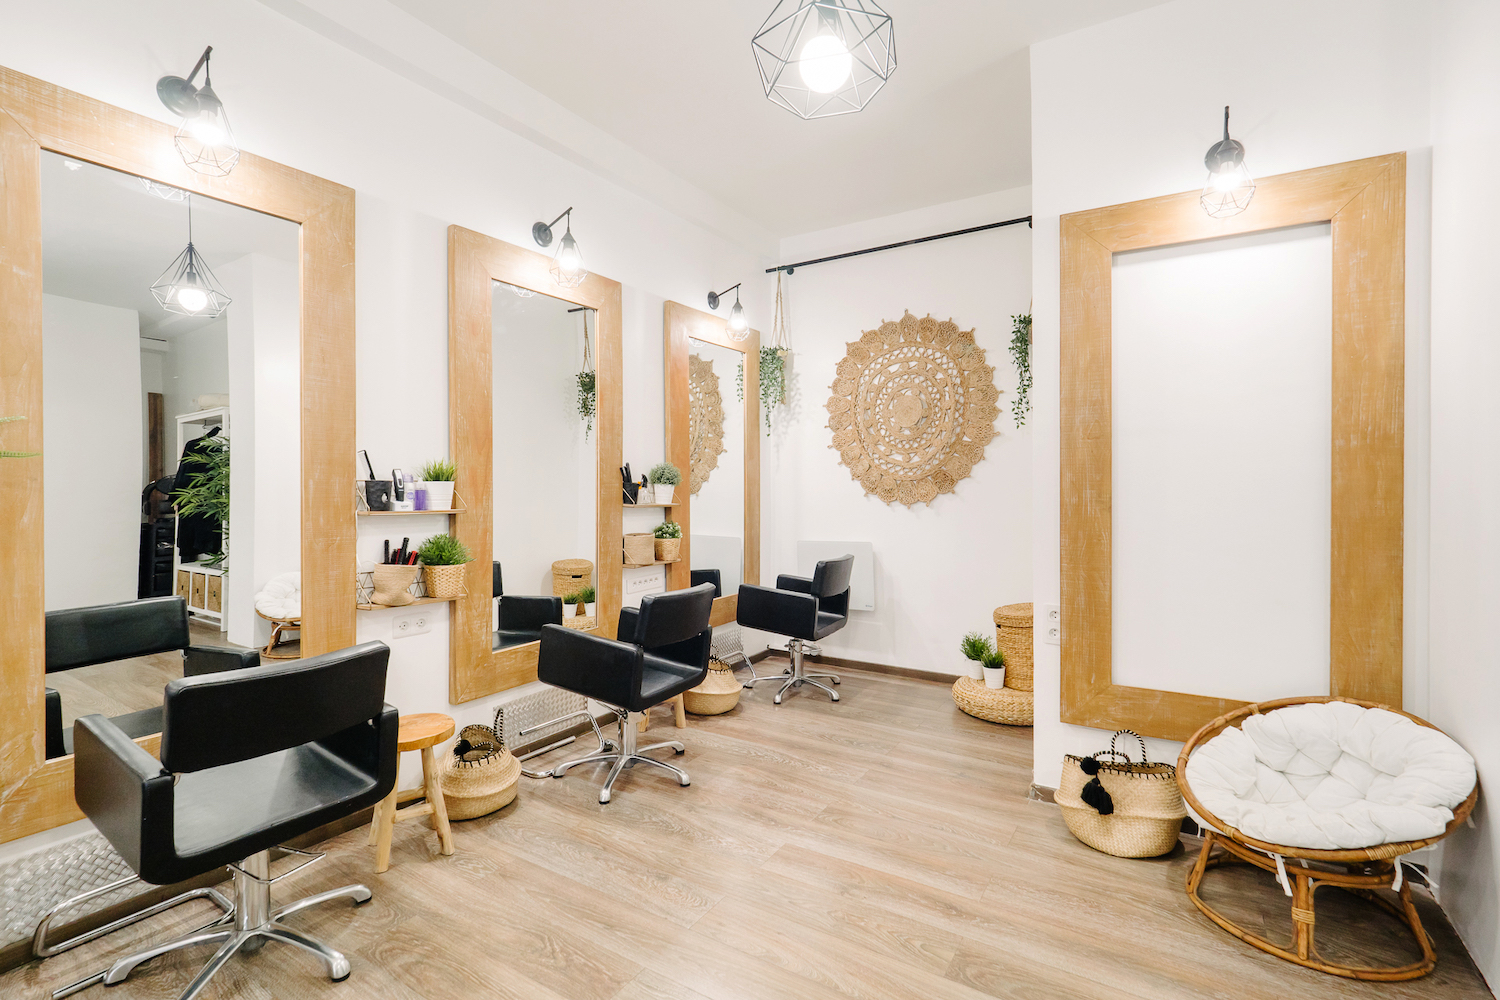 5 simple salon design ideas to make the most of your space